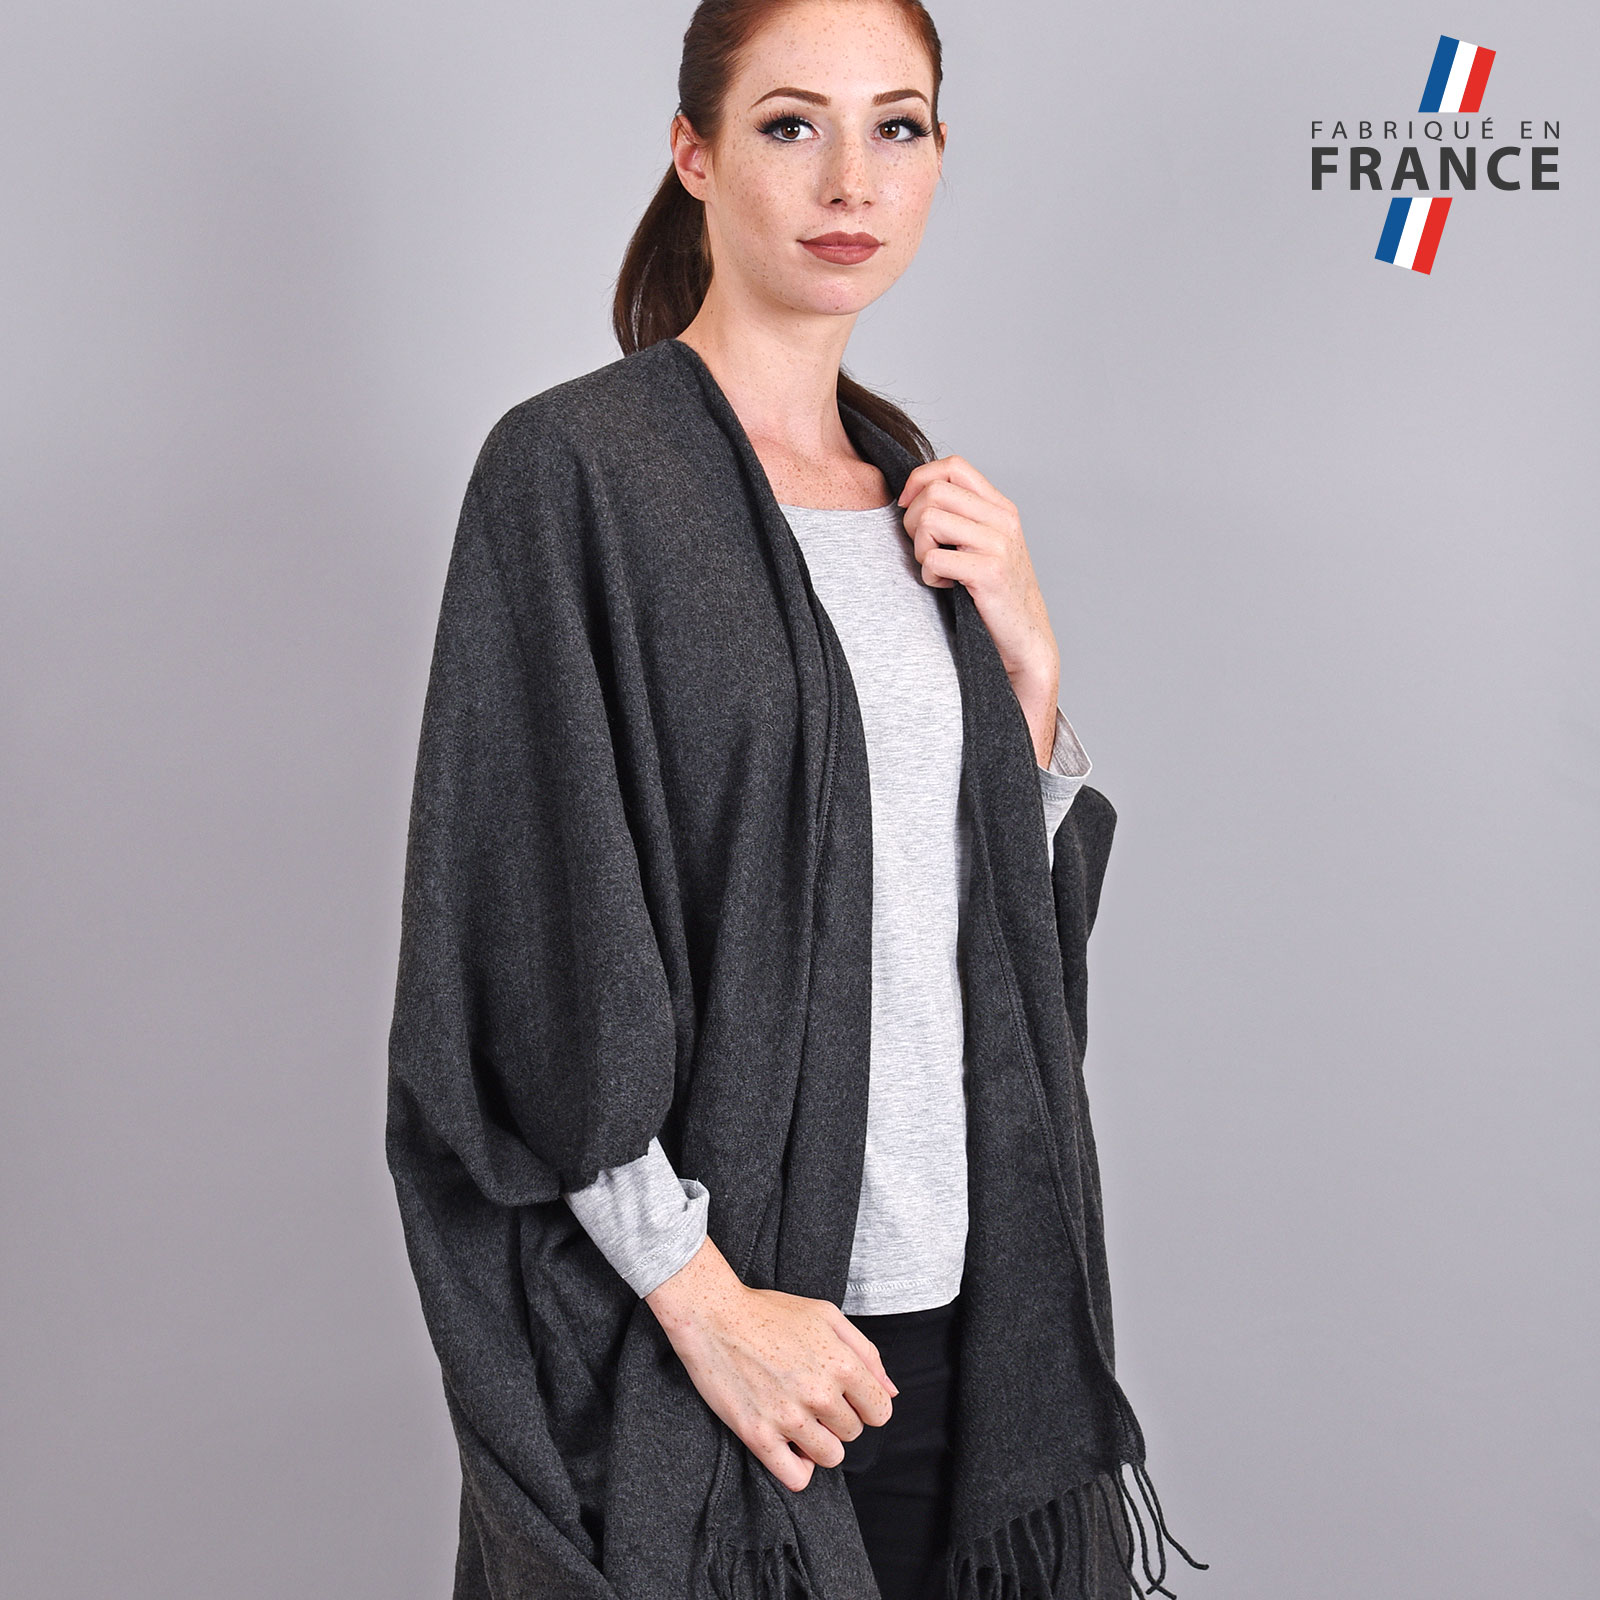 AT-03985-VF16-2-LB_FR-poncho-femme-hiver-larges-poches